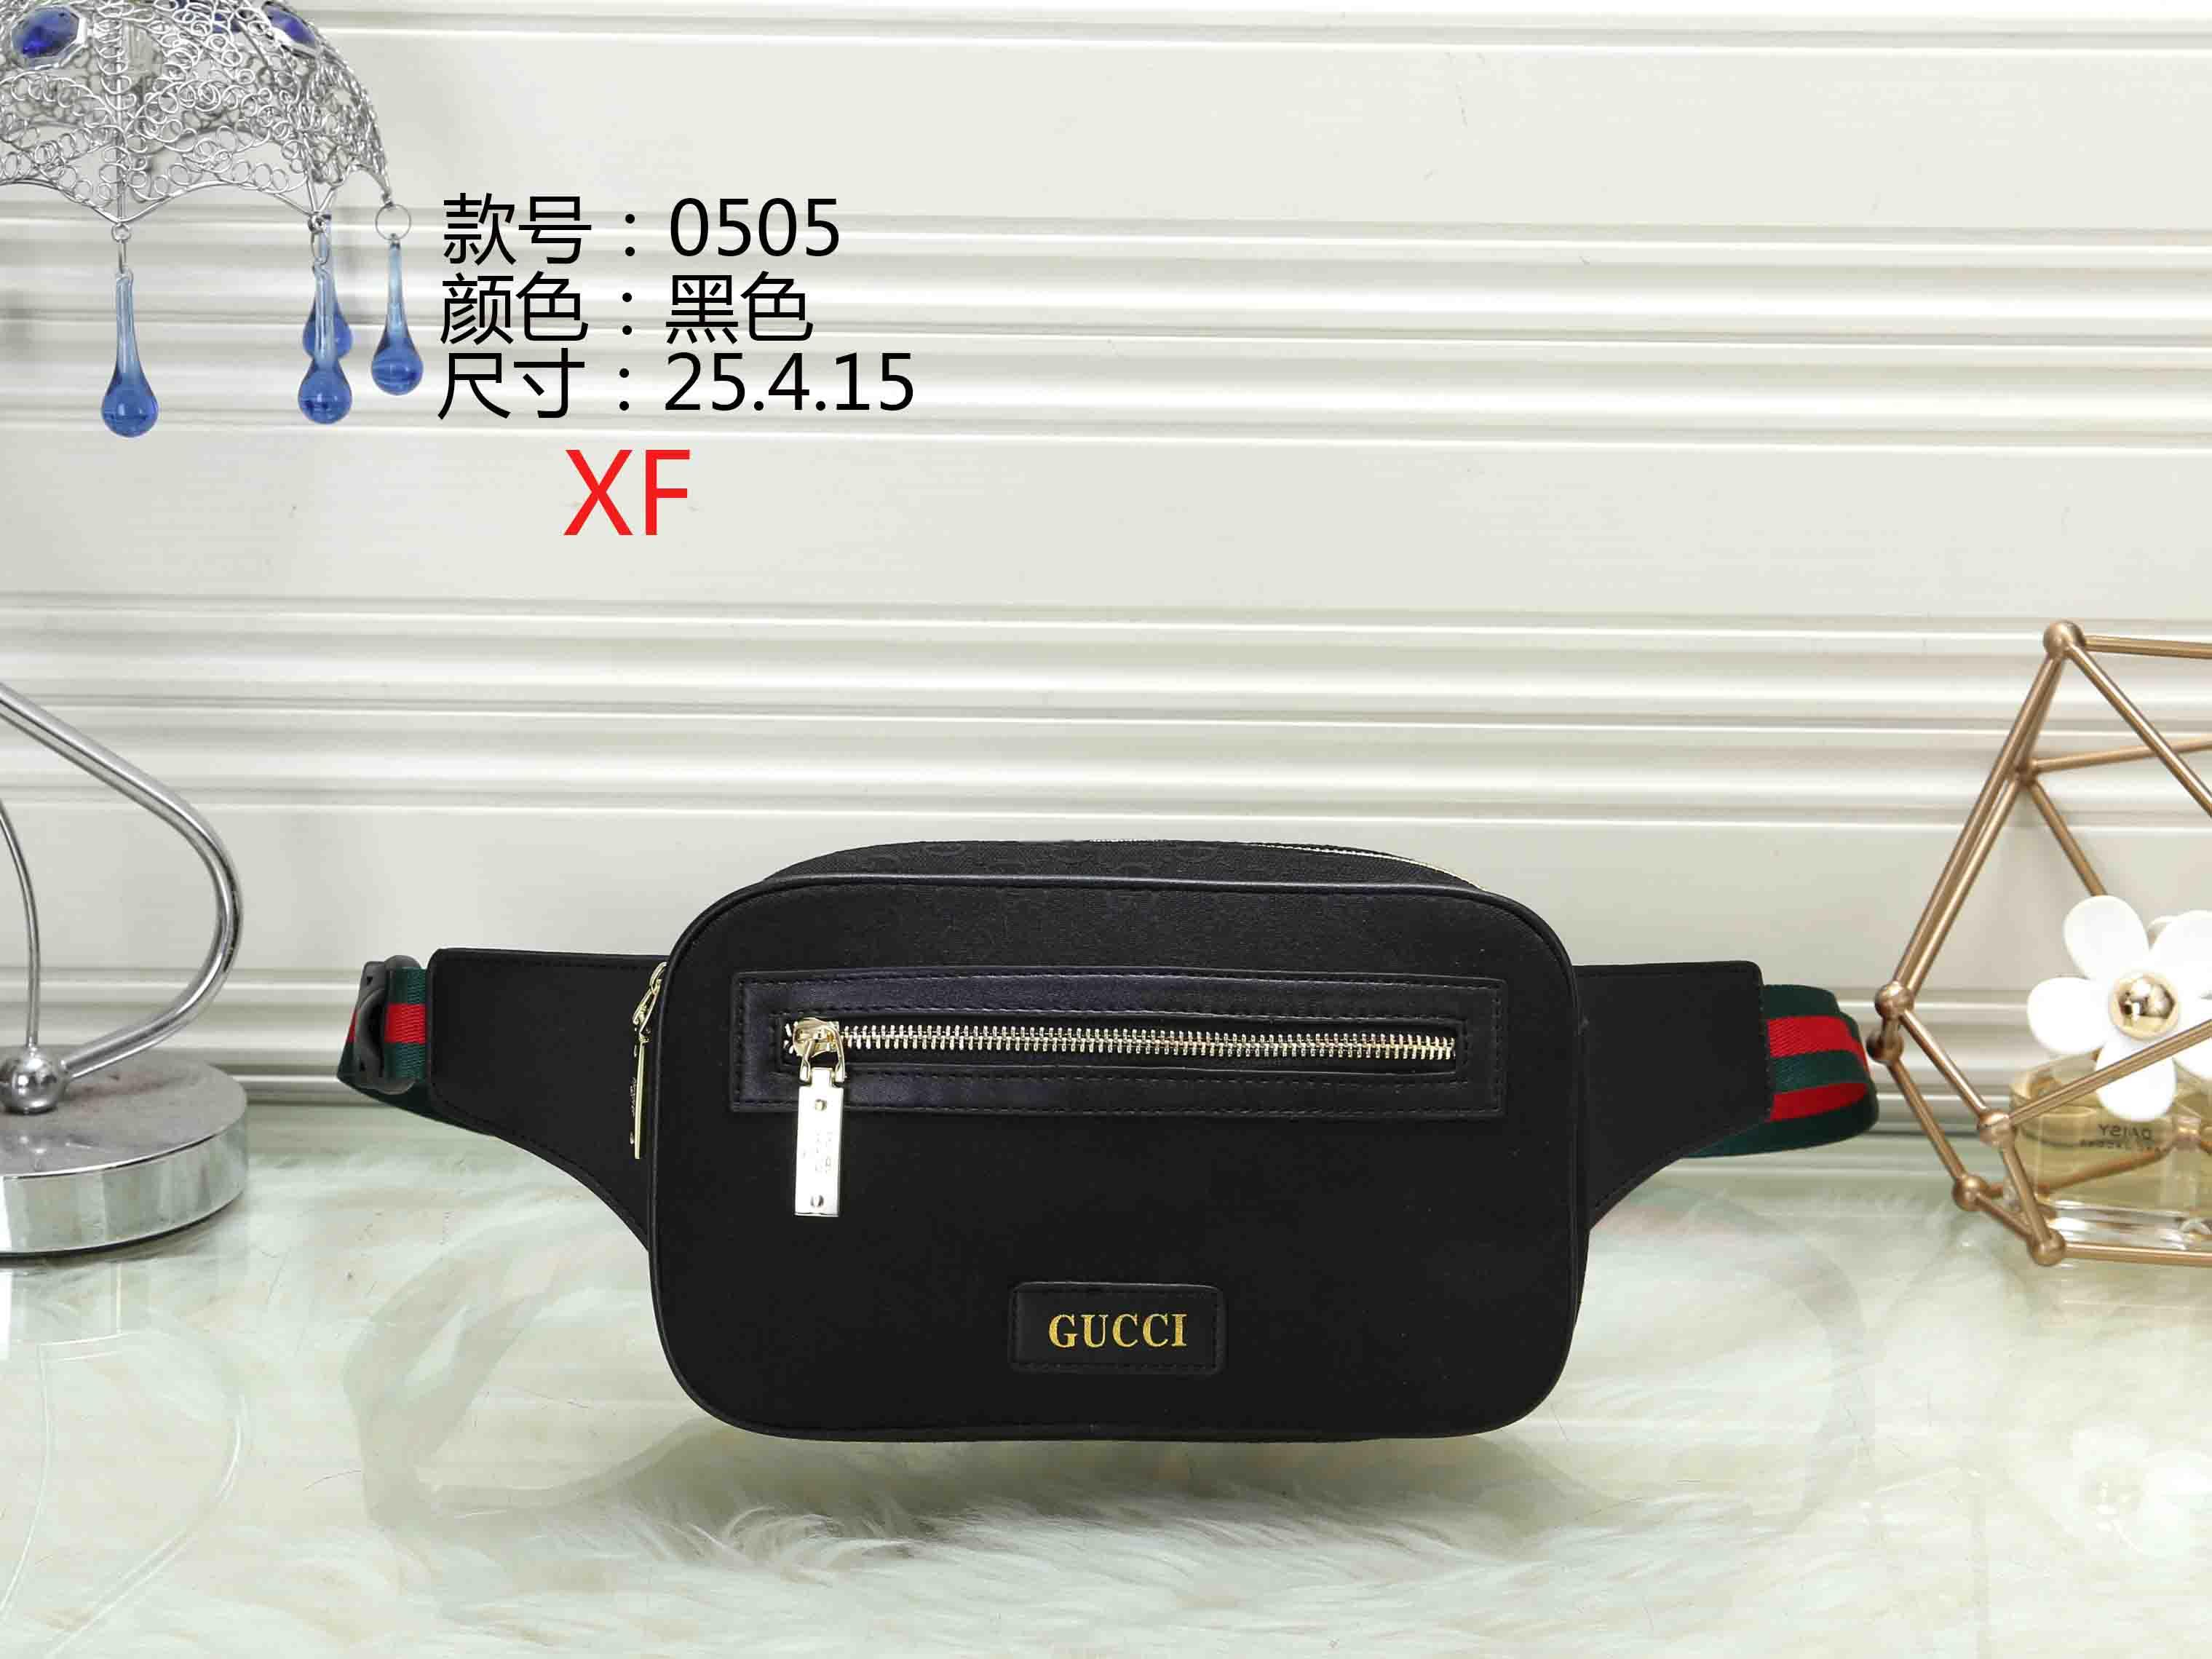 93c63f5314c 2019 Women Waist Bag Famous Brand Belt Bag Men Fanny Pack Designer Men  Waist Pack Pouch Small Graffiti Belly Bags New Style 2G 888695 Purses For  Sale ...